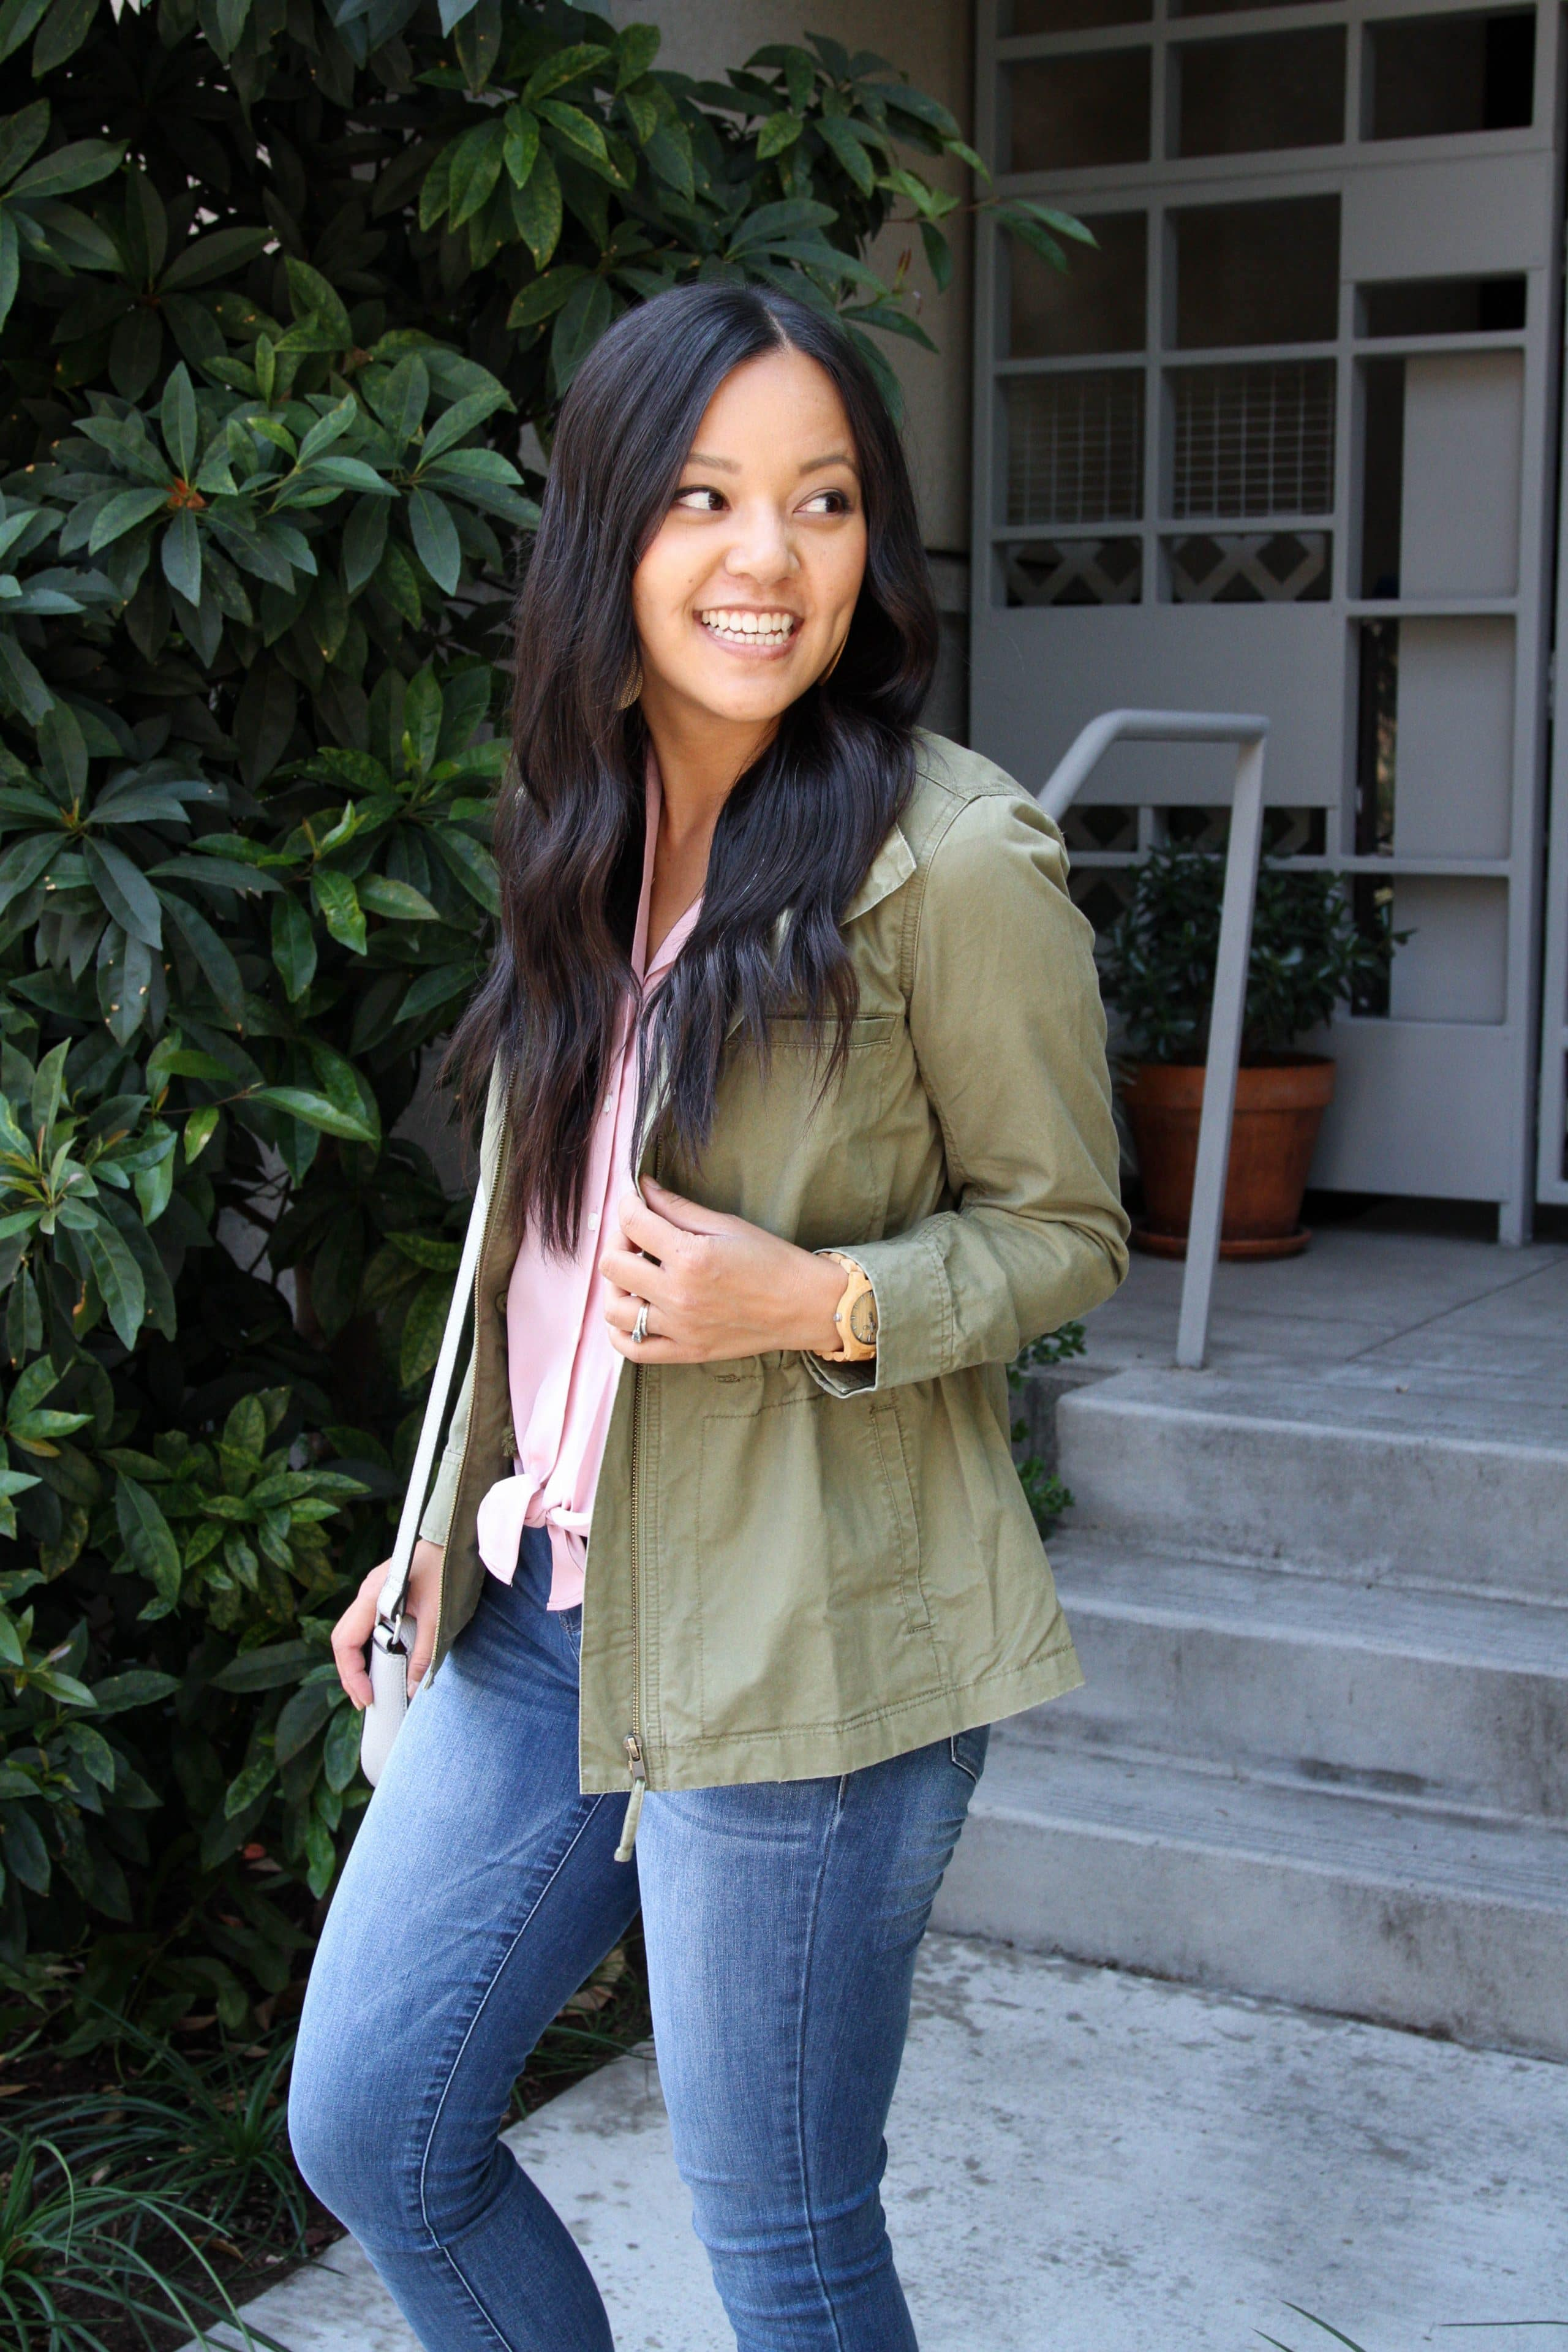 Utility Jacket + Light Jeans + Pink Top + Gray Bag + Statement Earrings